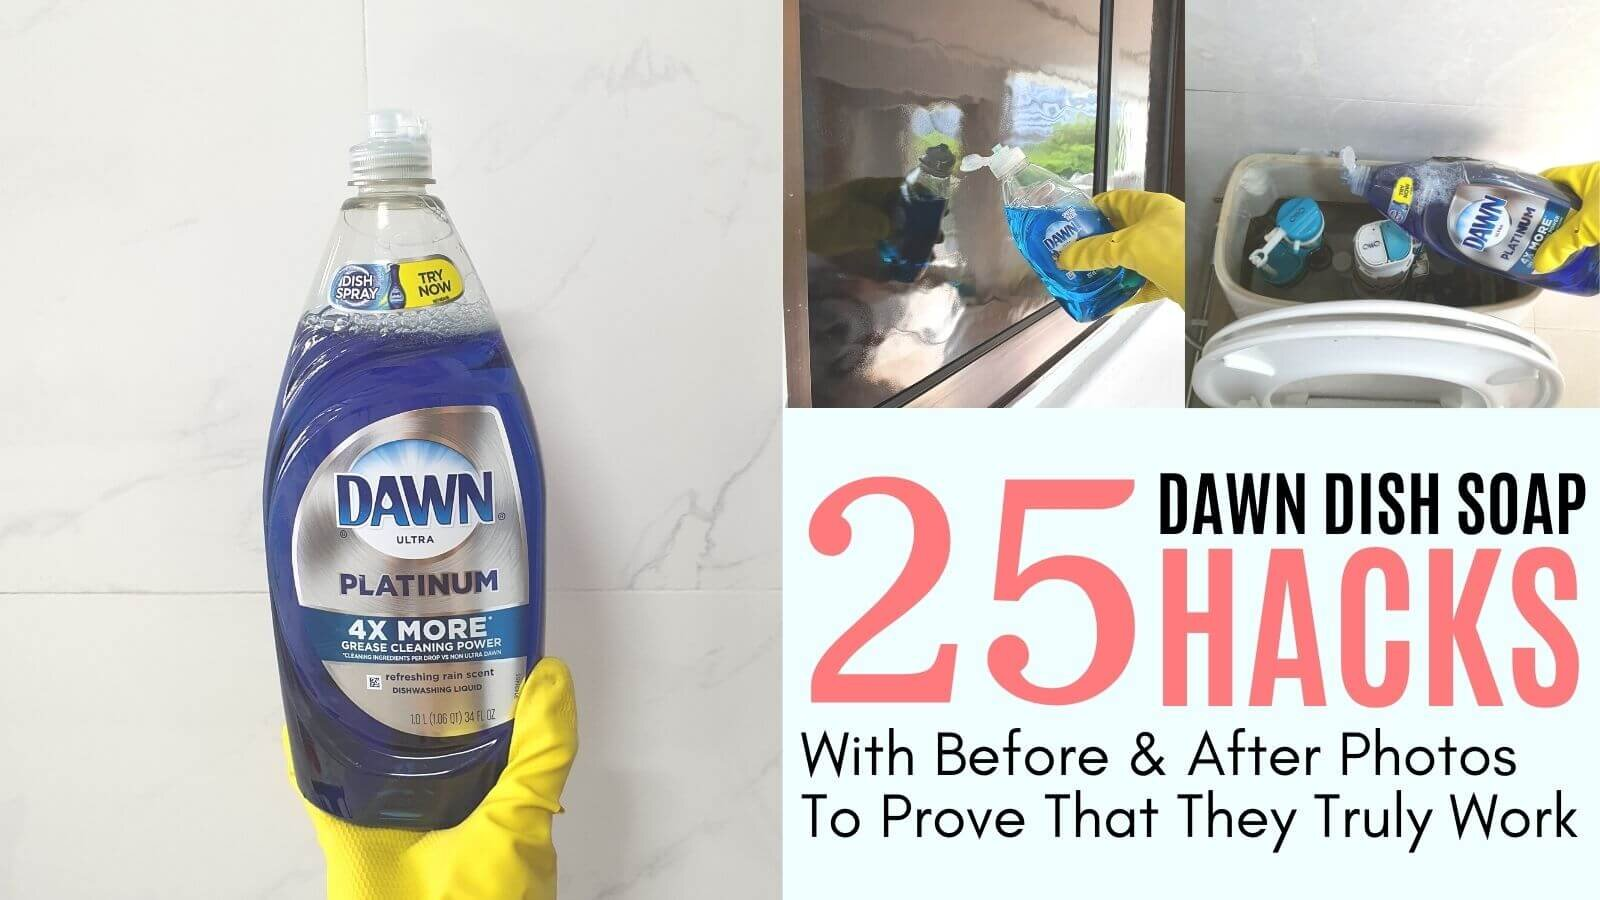 dawn dish soap hacks.jpg